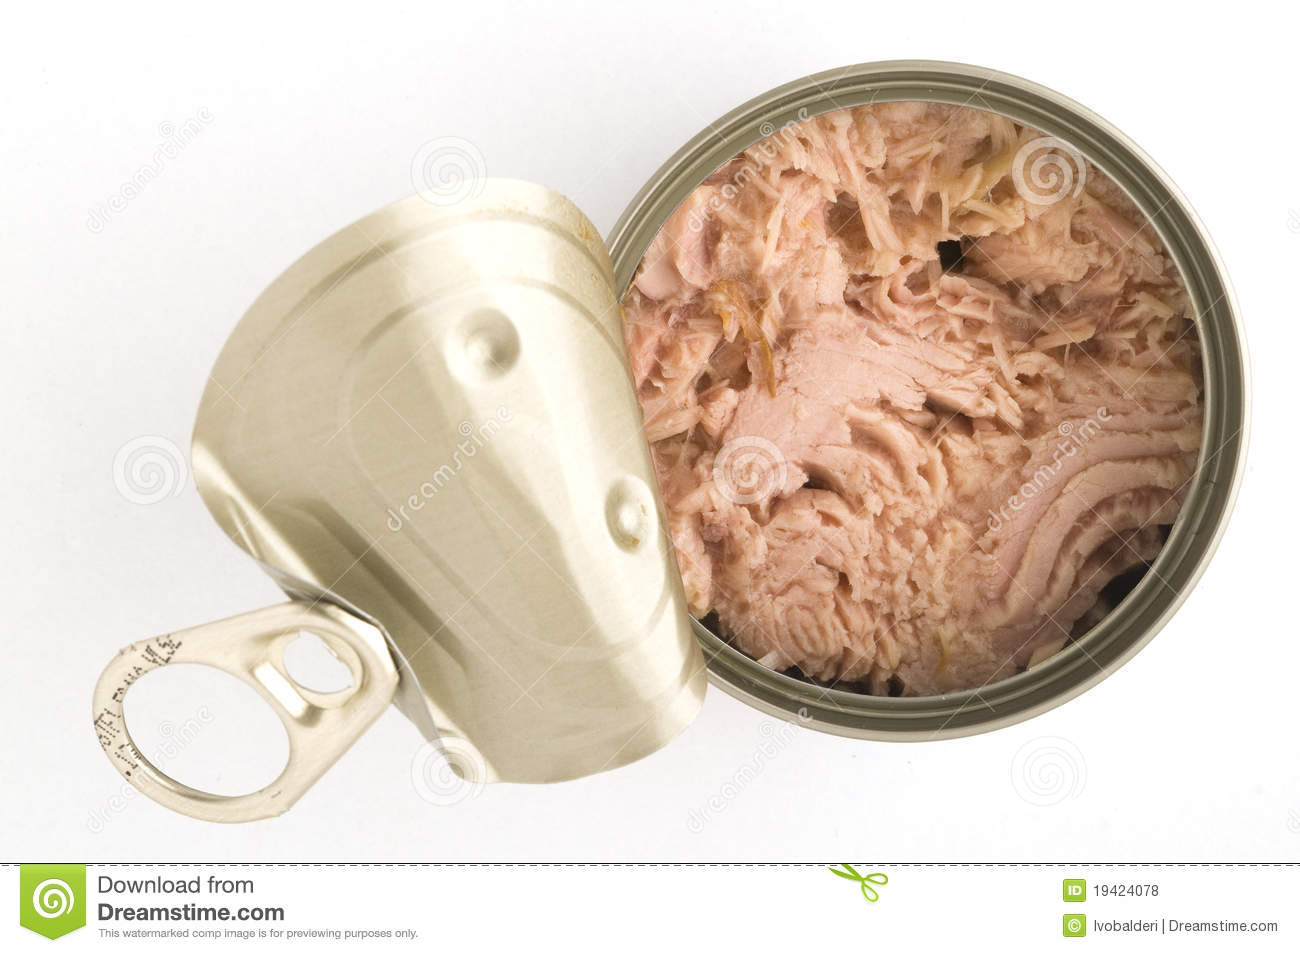 Fish in a can royalty free stock photos image 19424078 for Tuna fish can